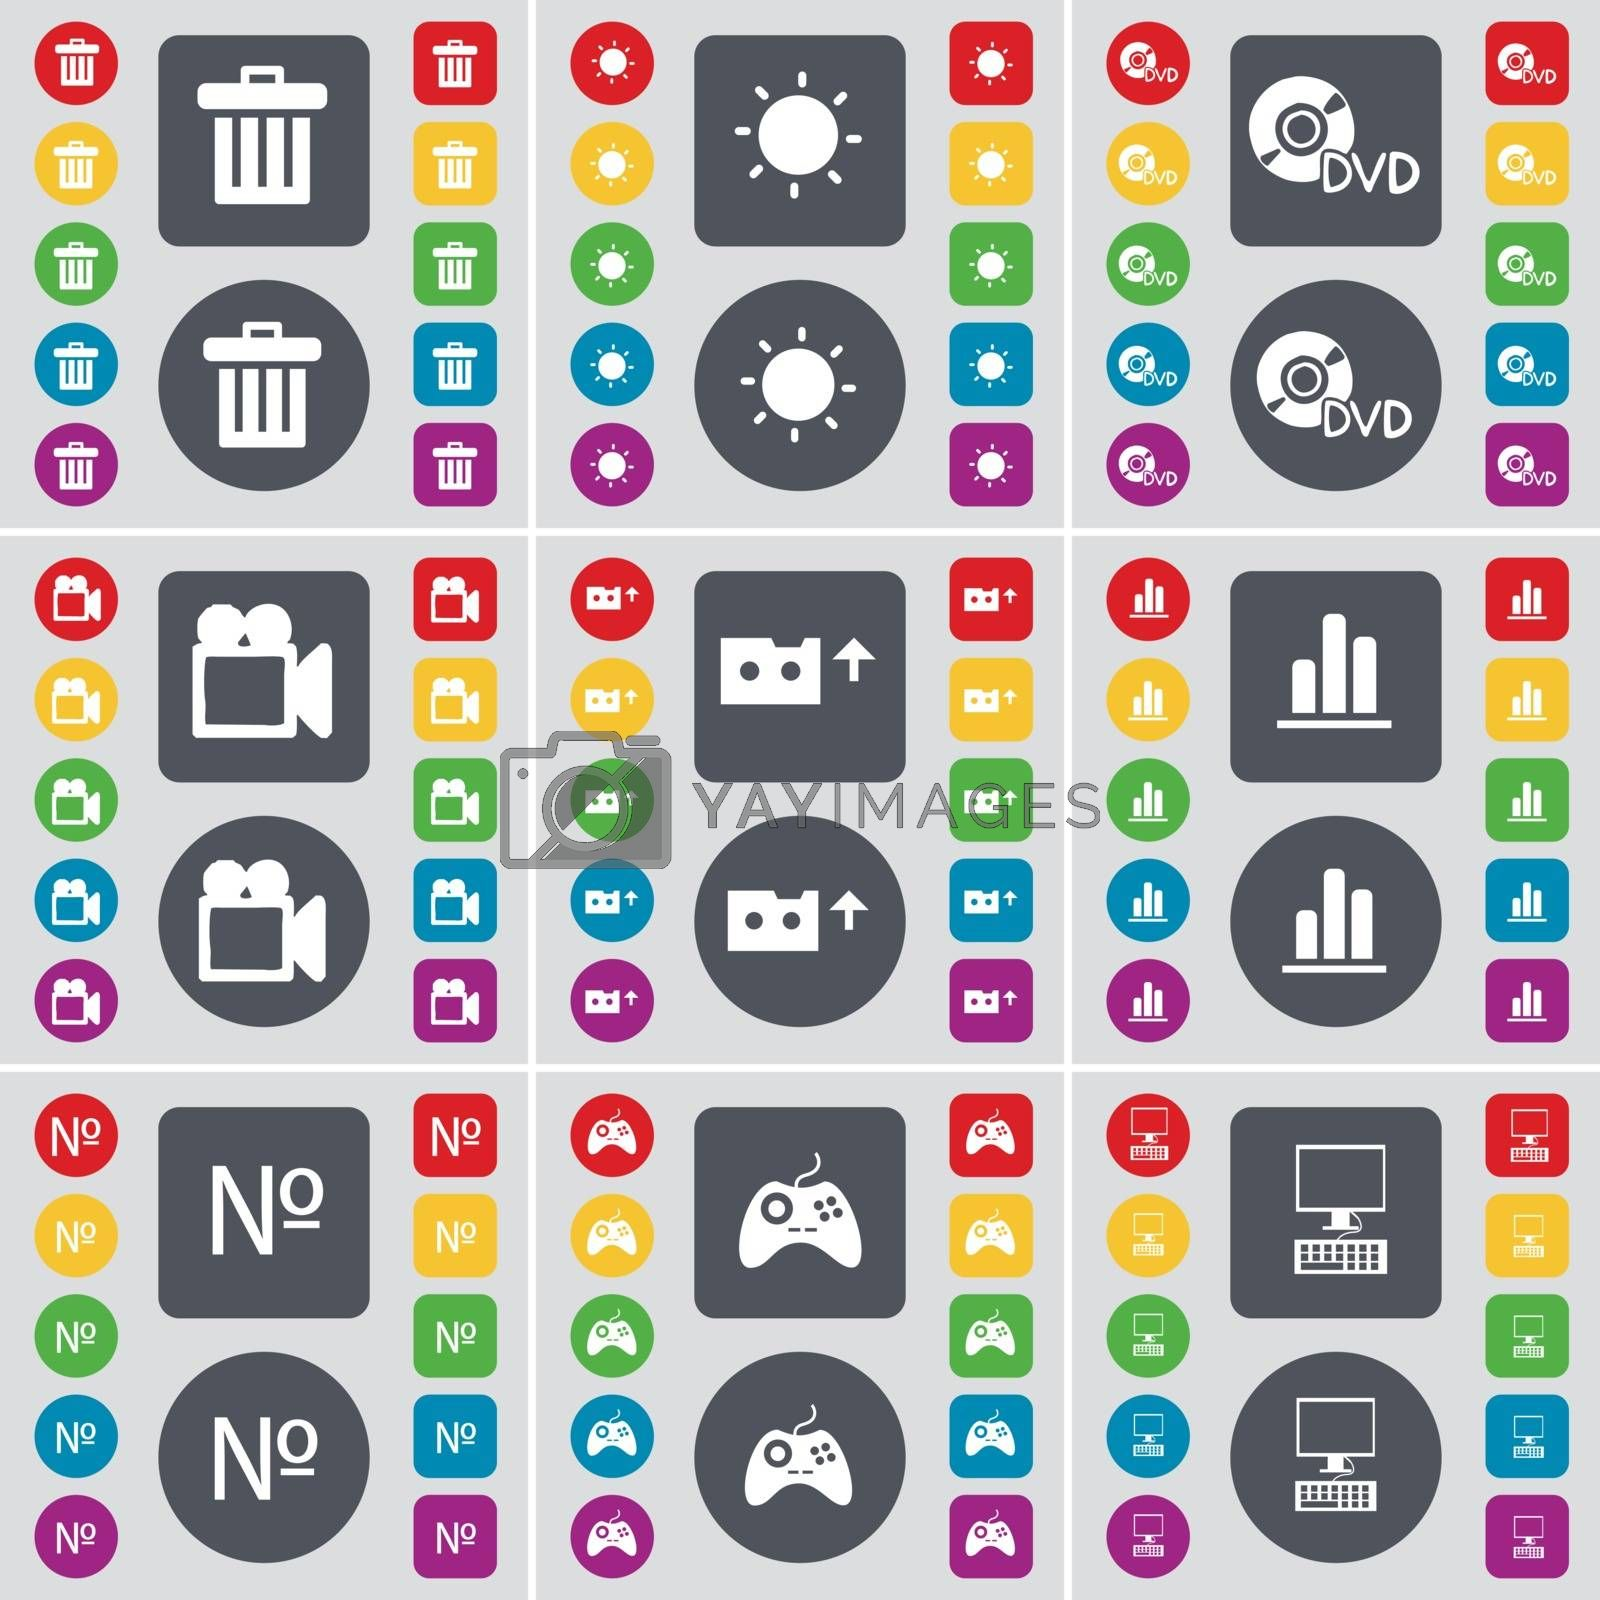 Royalty free image of Trash can, Light, DVD, Film camera, Cassette, Diagram, Number, Gamepad, PC icon symbol. A large set of flat, colored buttons for your design. Vector by serhii_lohvyniuk